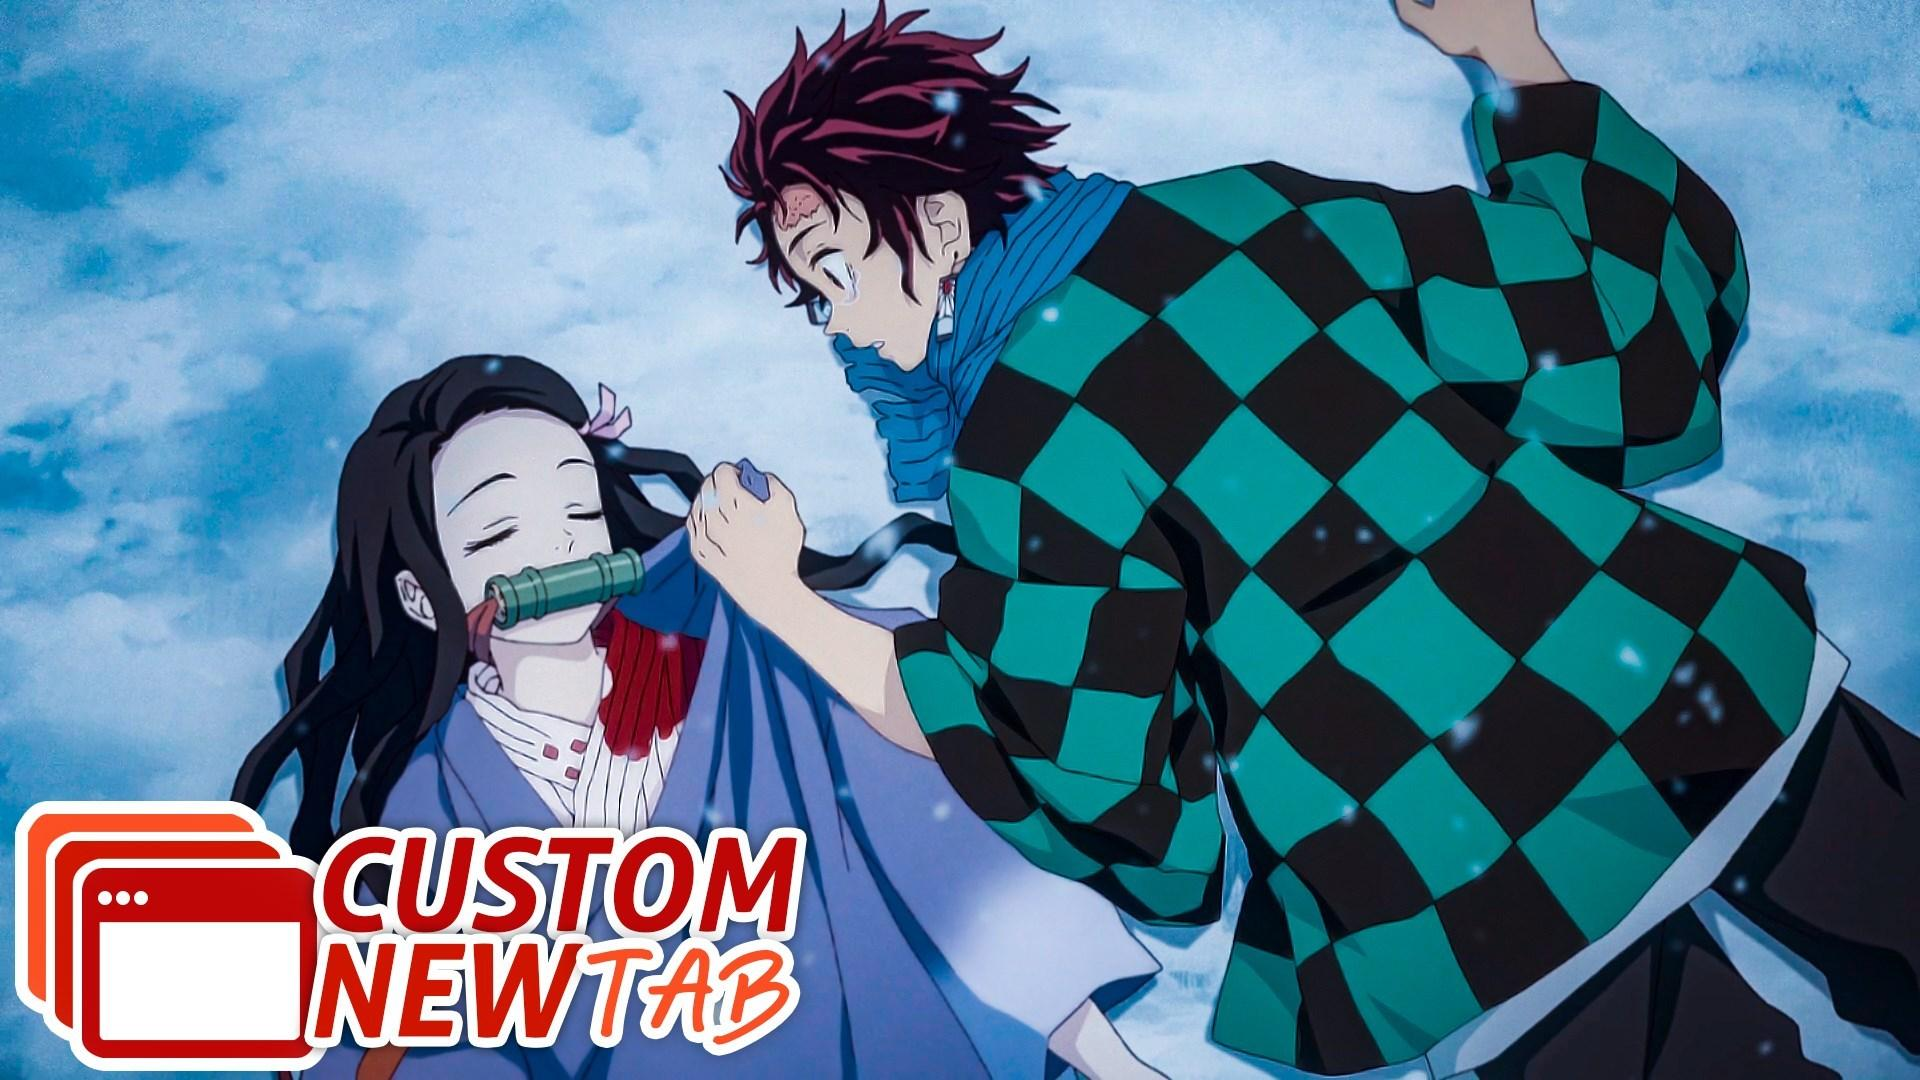 Kimetsu no Yaiba Wallpapers New Tab Backgrounds